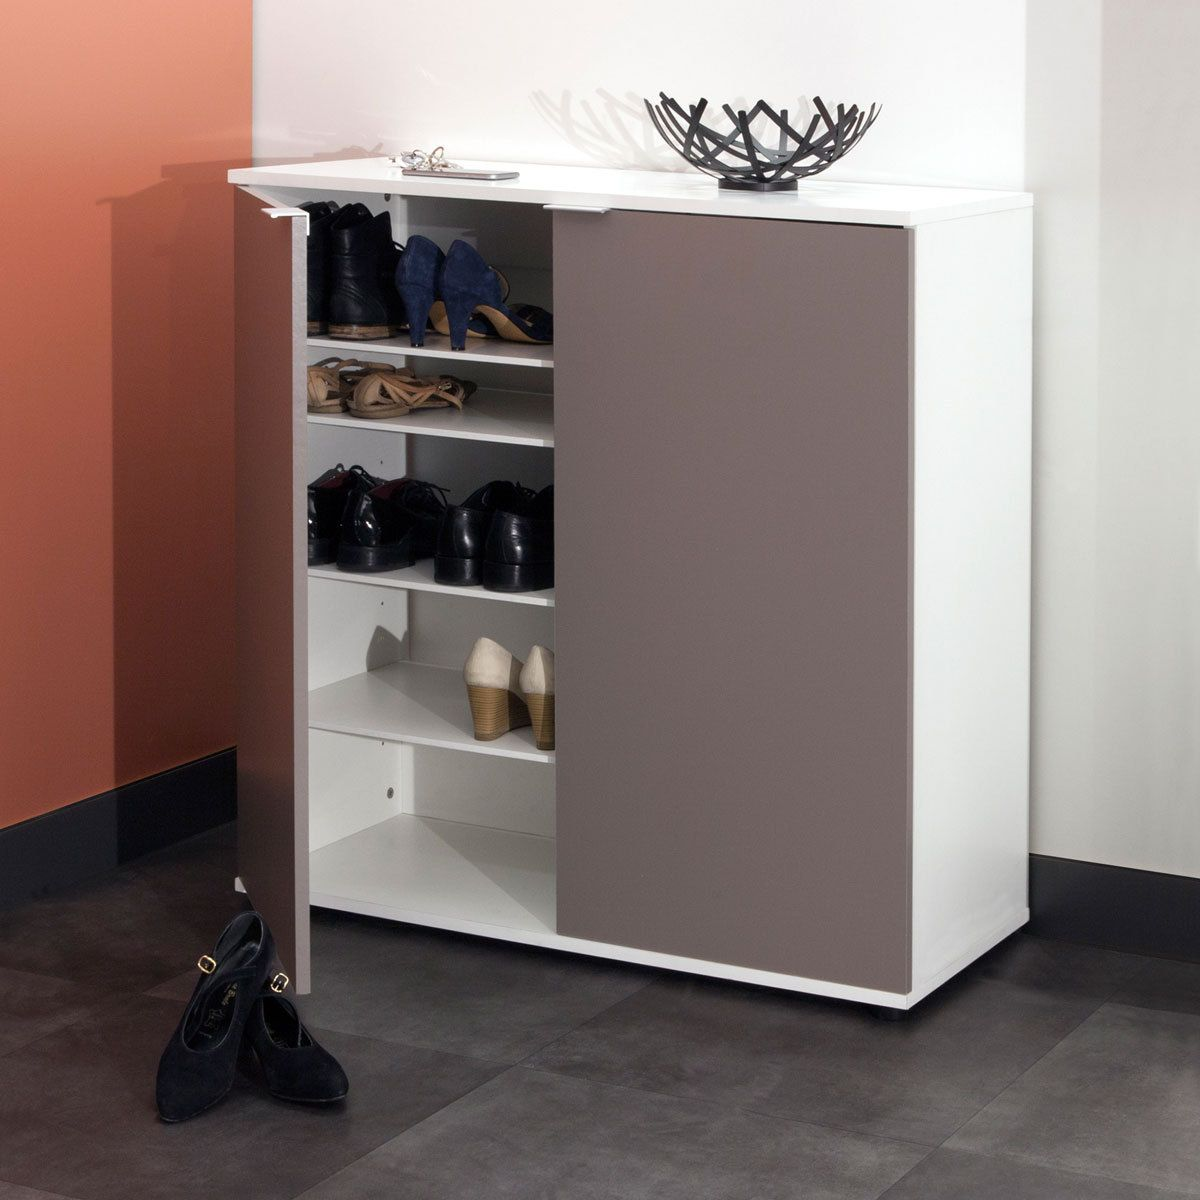 meuble chaussure meuble chaussure with meuble chaussure top gallery of meuble portes tiroirs. Black Bedroom Furniture Sets. Home Design Ideas